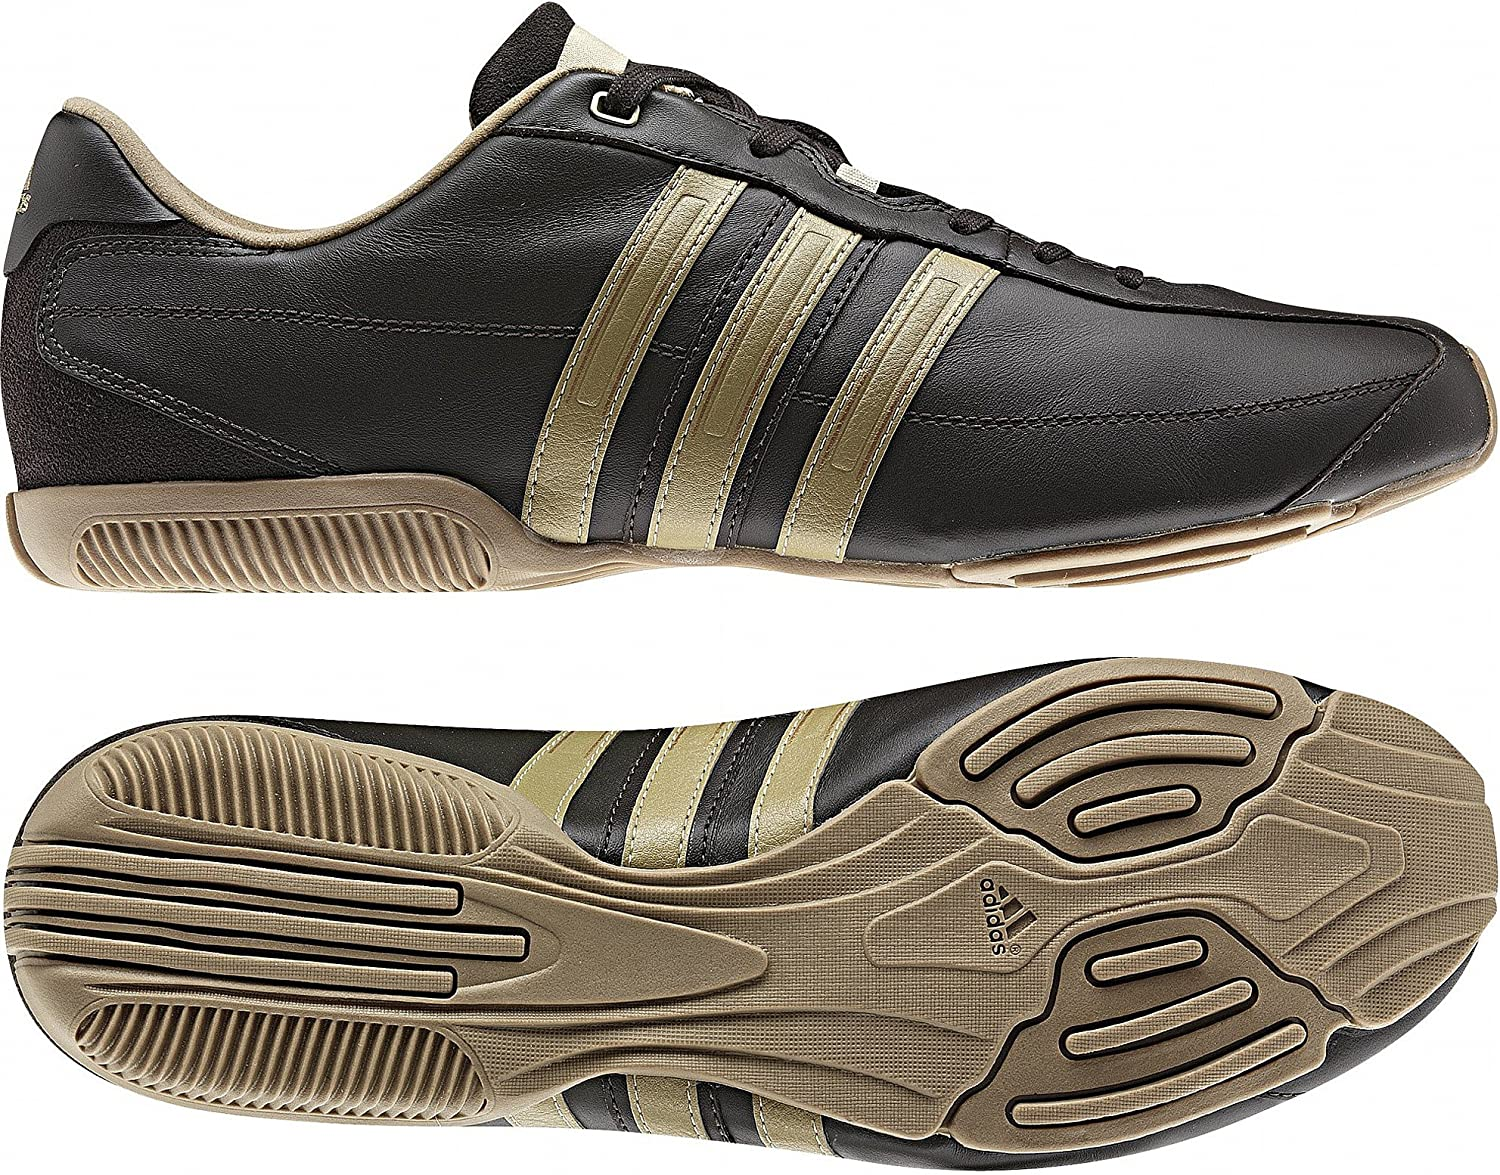 adidas Morka 2G40541 Shoes Brown Brown Size: 8.5: Amazon.co.uk ...